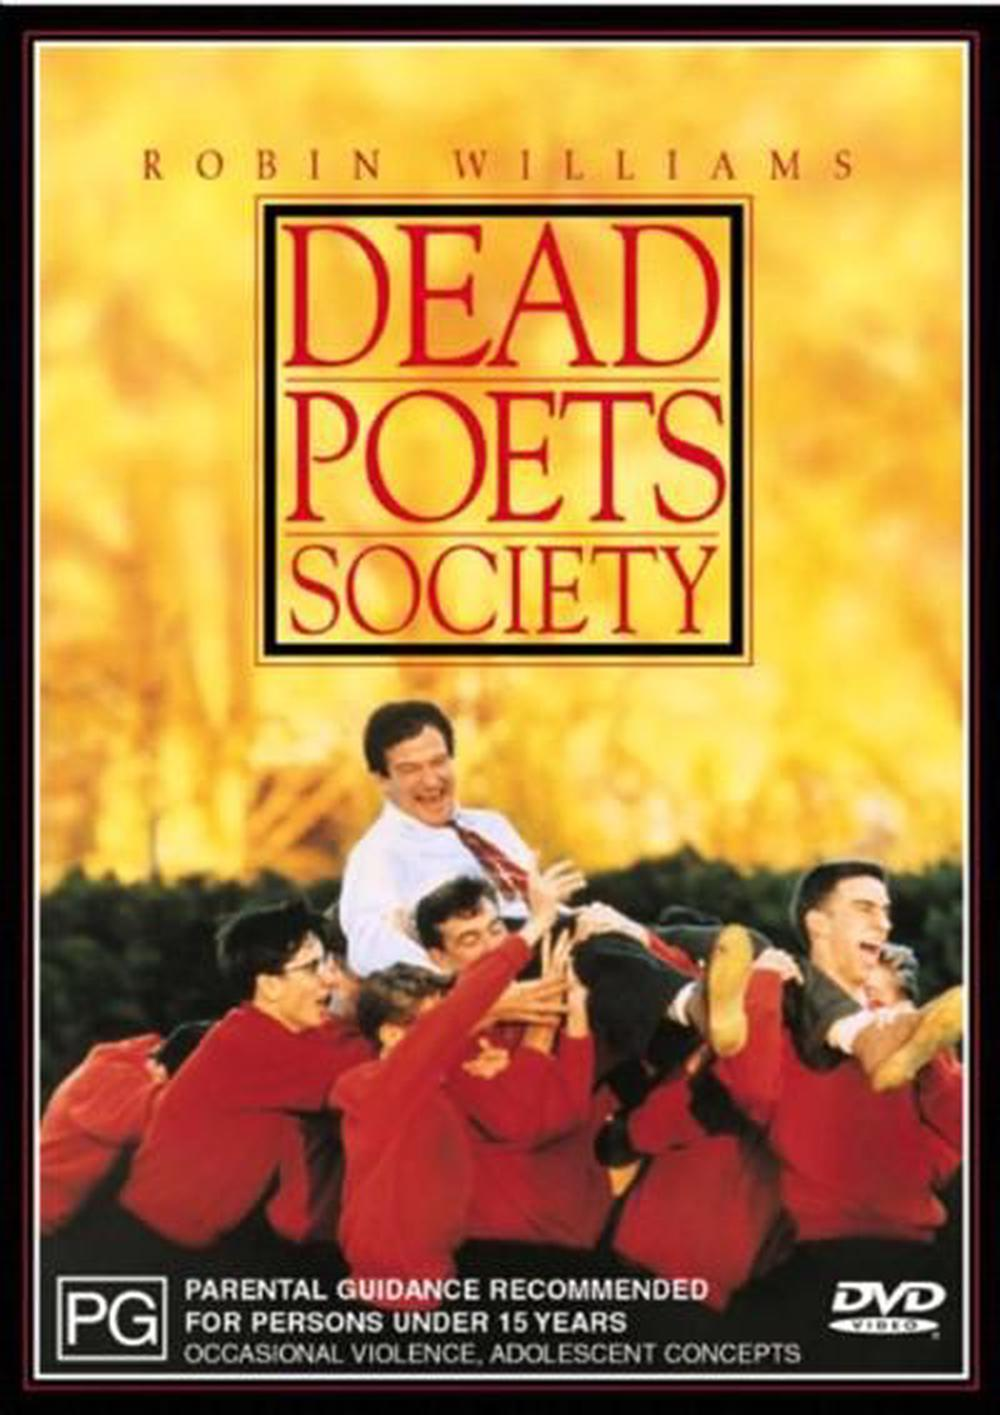 Dead Poets Society (special Edition), DVD | Buy online at The Nile